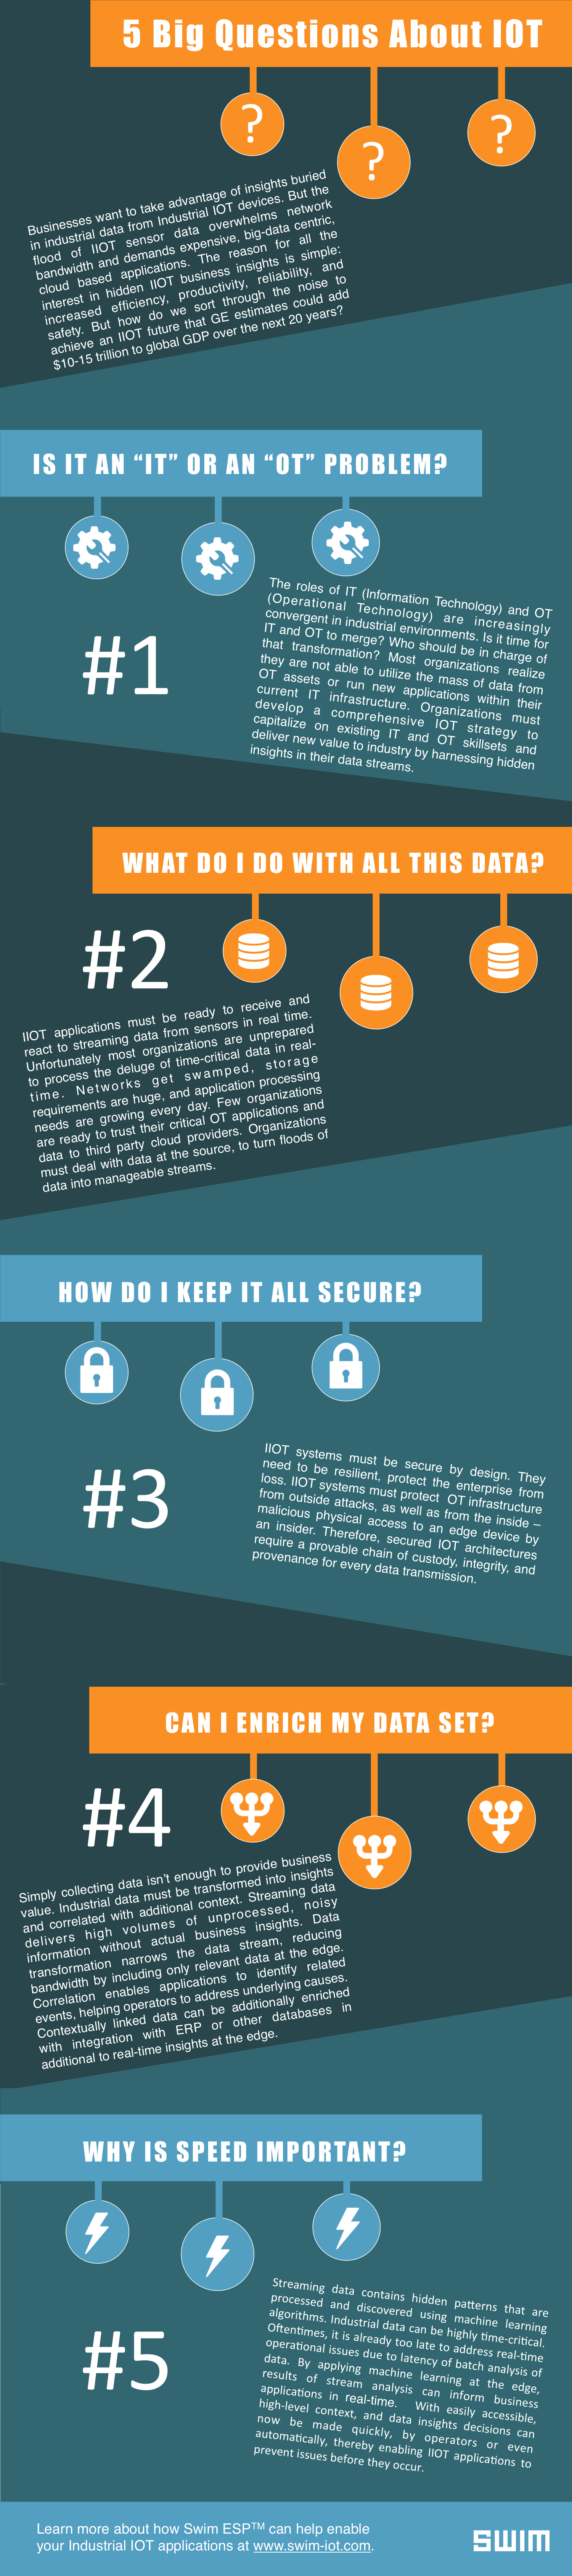 Five Big Questions About Industrial IOT - IOT Infographic | Swim Inc.